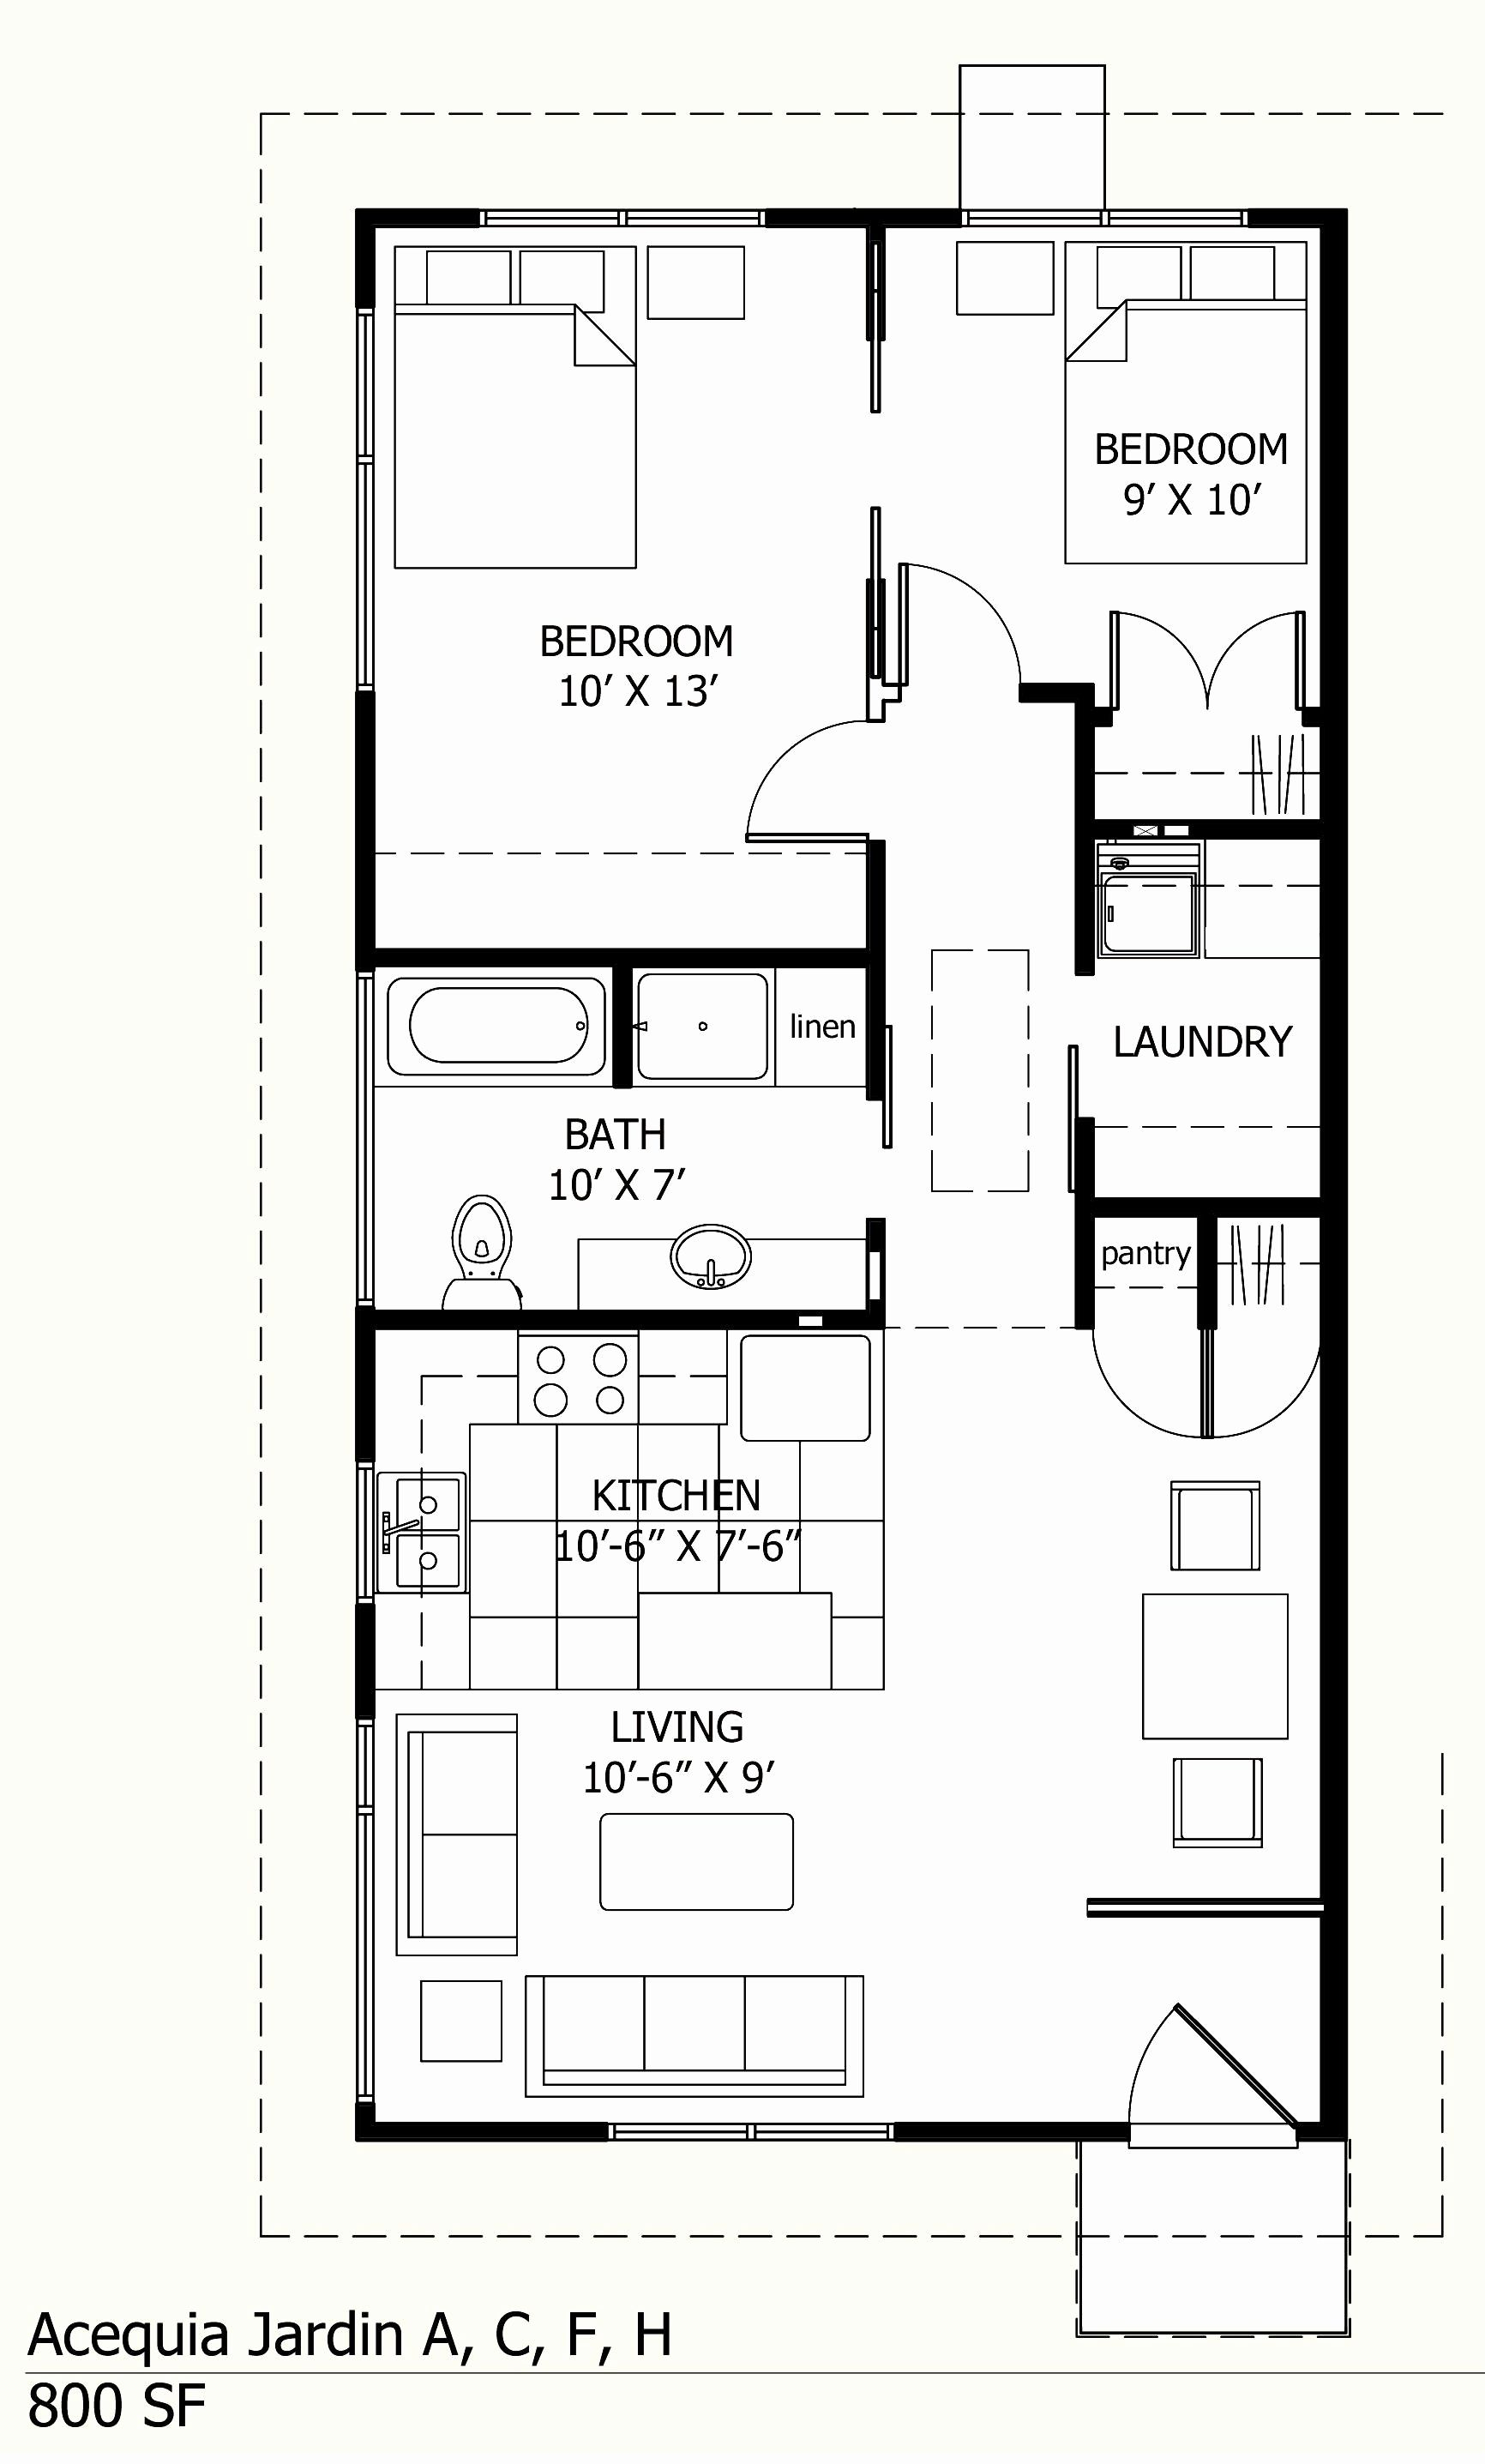 700 Square Foot House Plans Inspirational Marvelous Design Ideas 14 900 Sq Ft House Plans With Loft 70 Small House Layout House Floor Plans Cottage House Plans